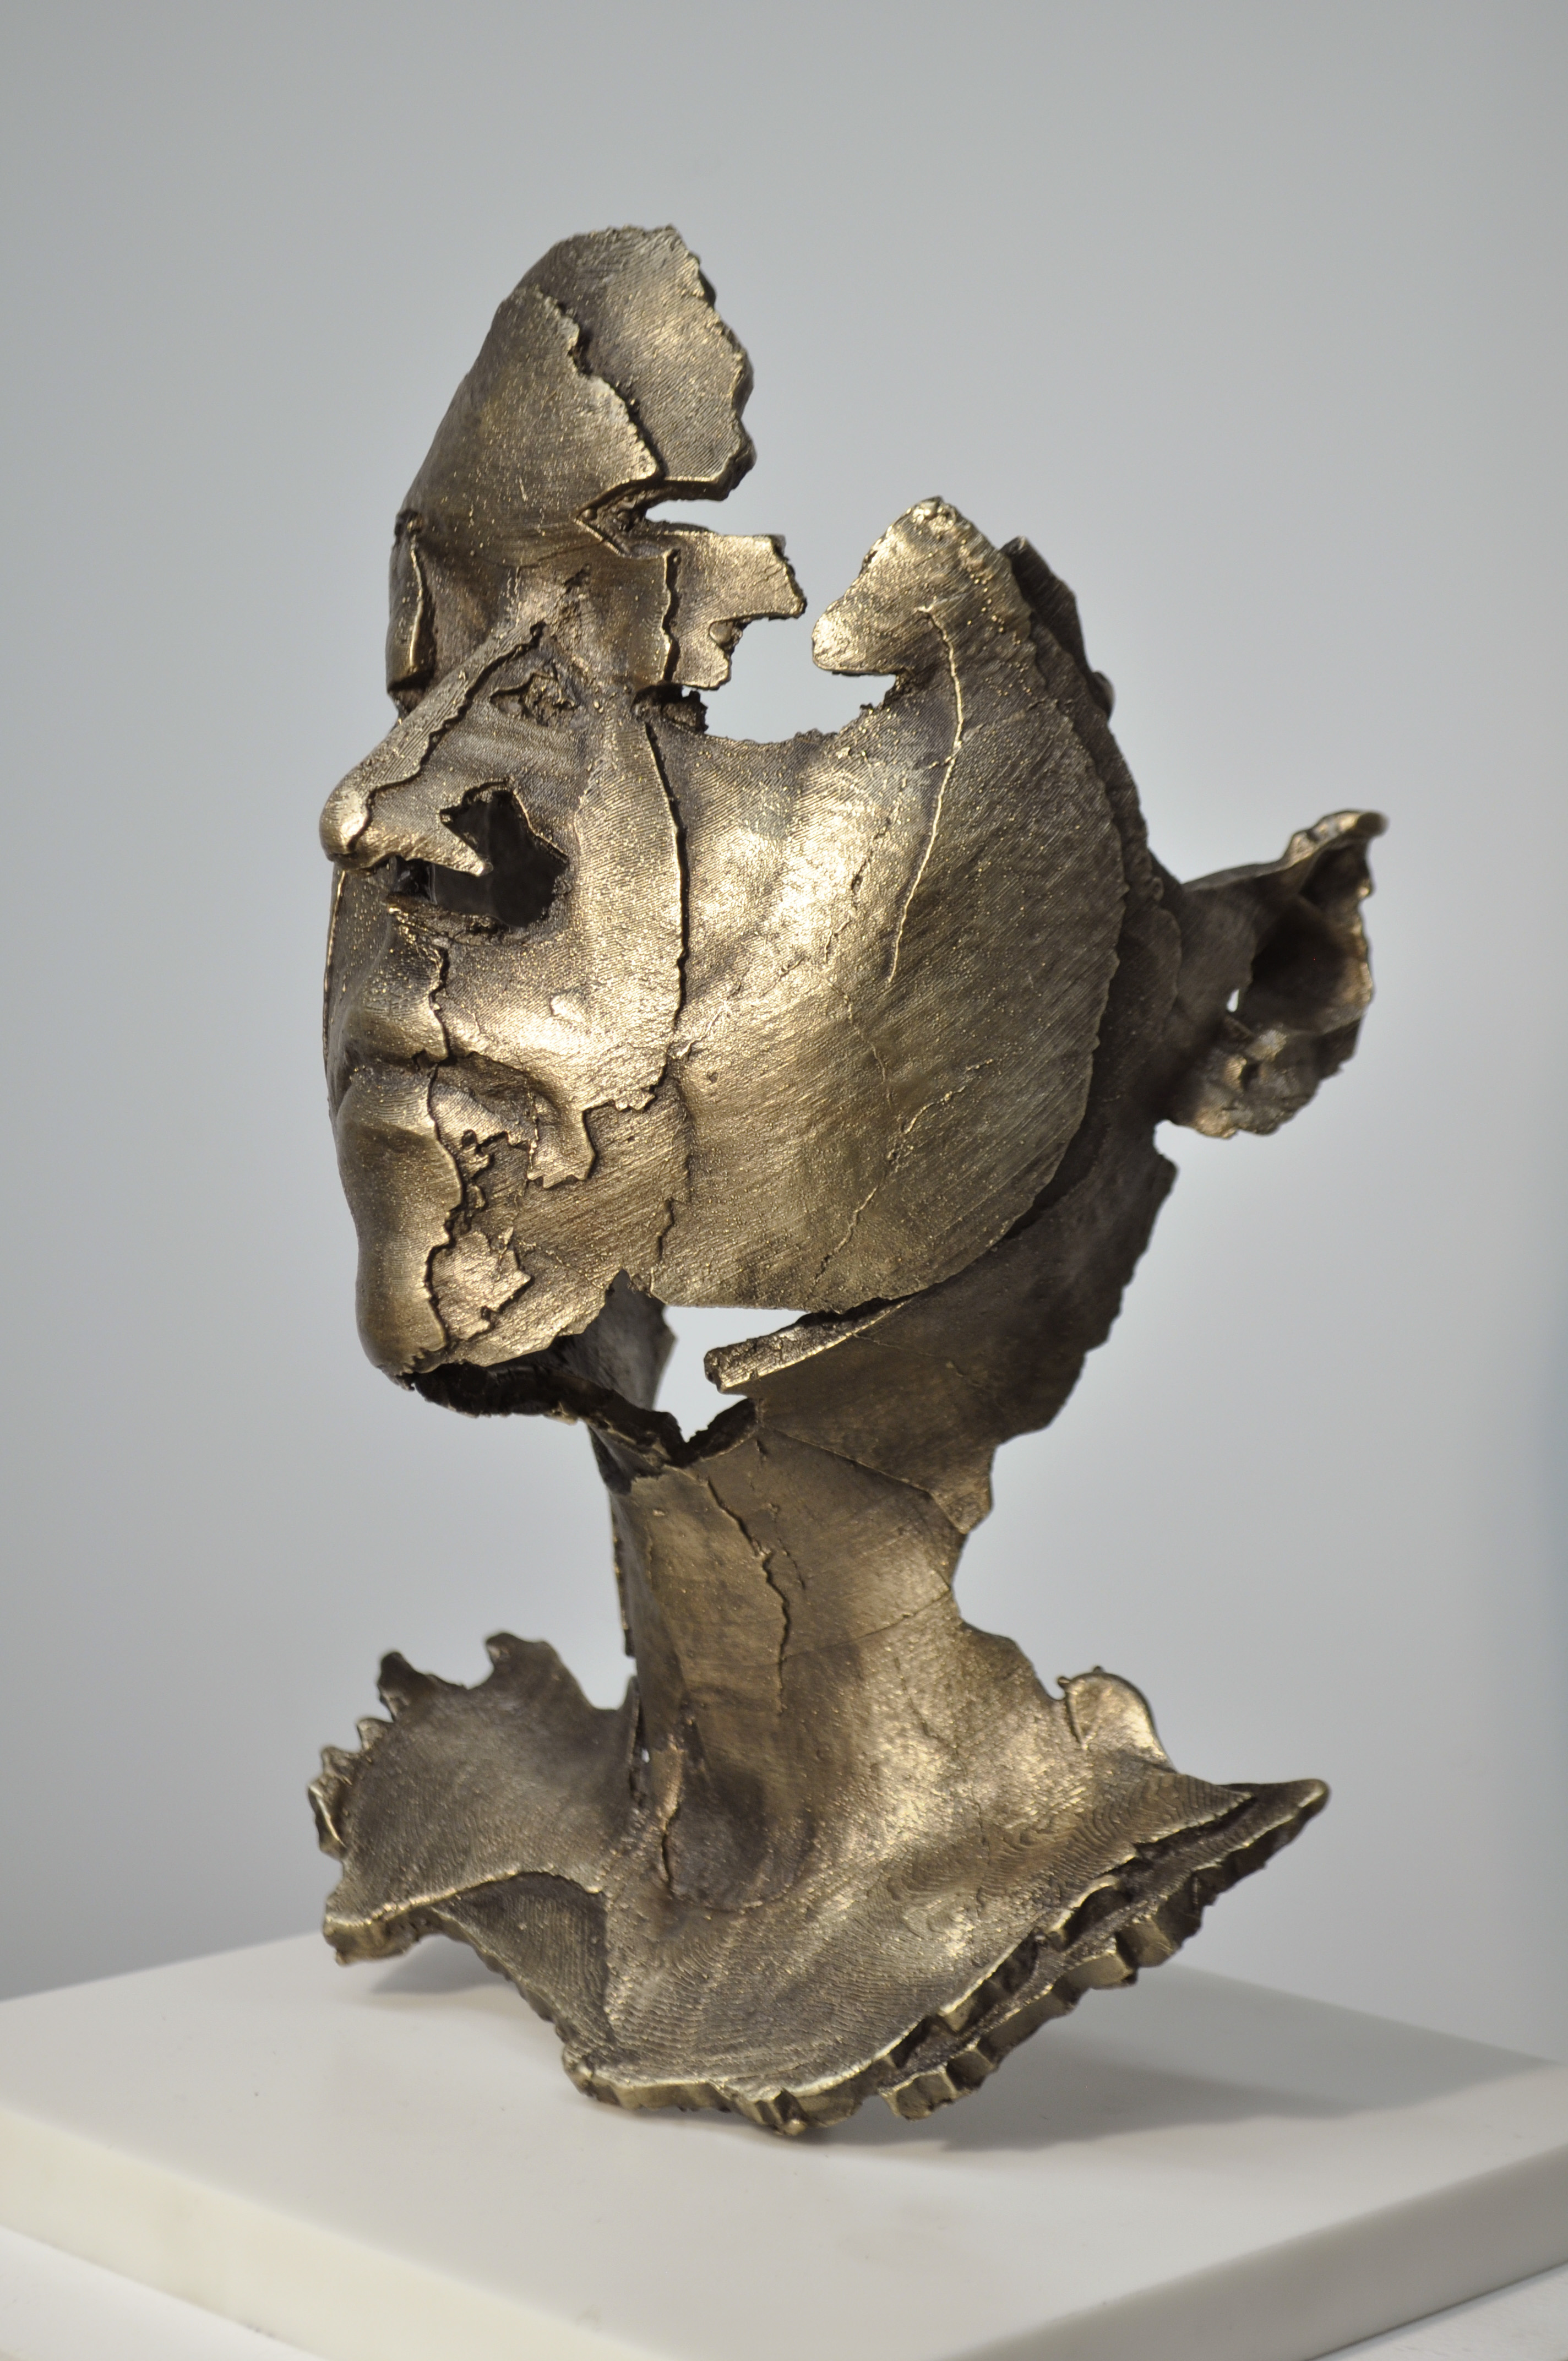 Kahn, LGold (Hi Res), 2014, bronze, gold patina, cast from a 3D printer, 13×9.25×8.25in